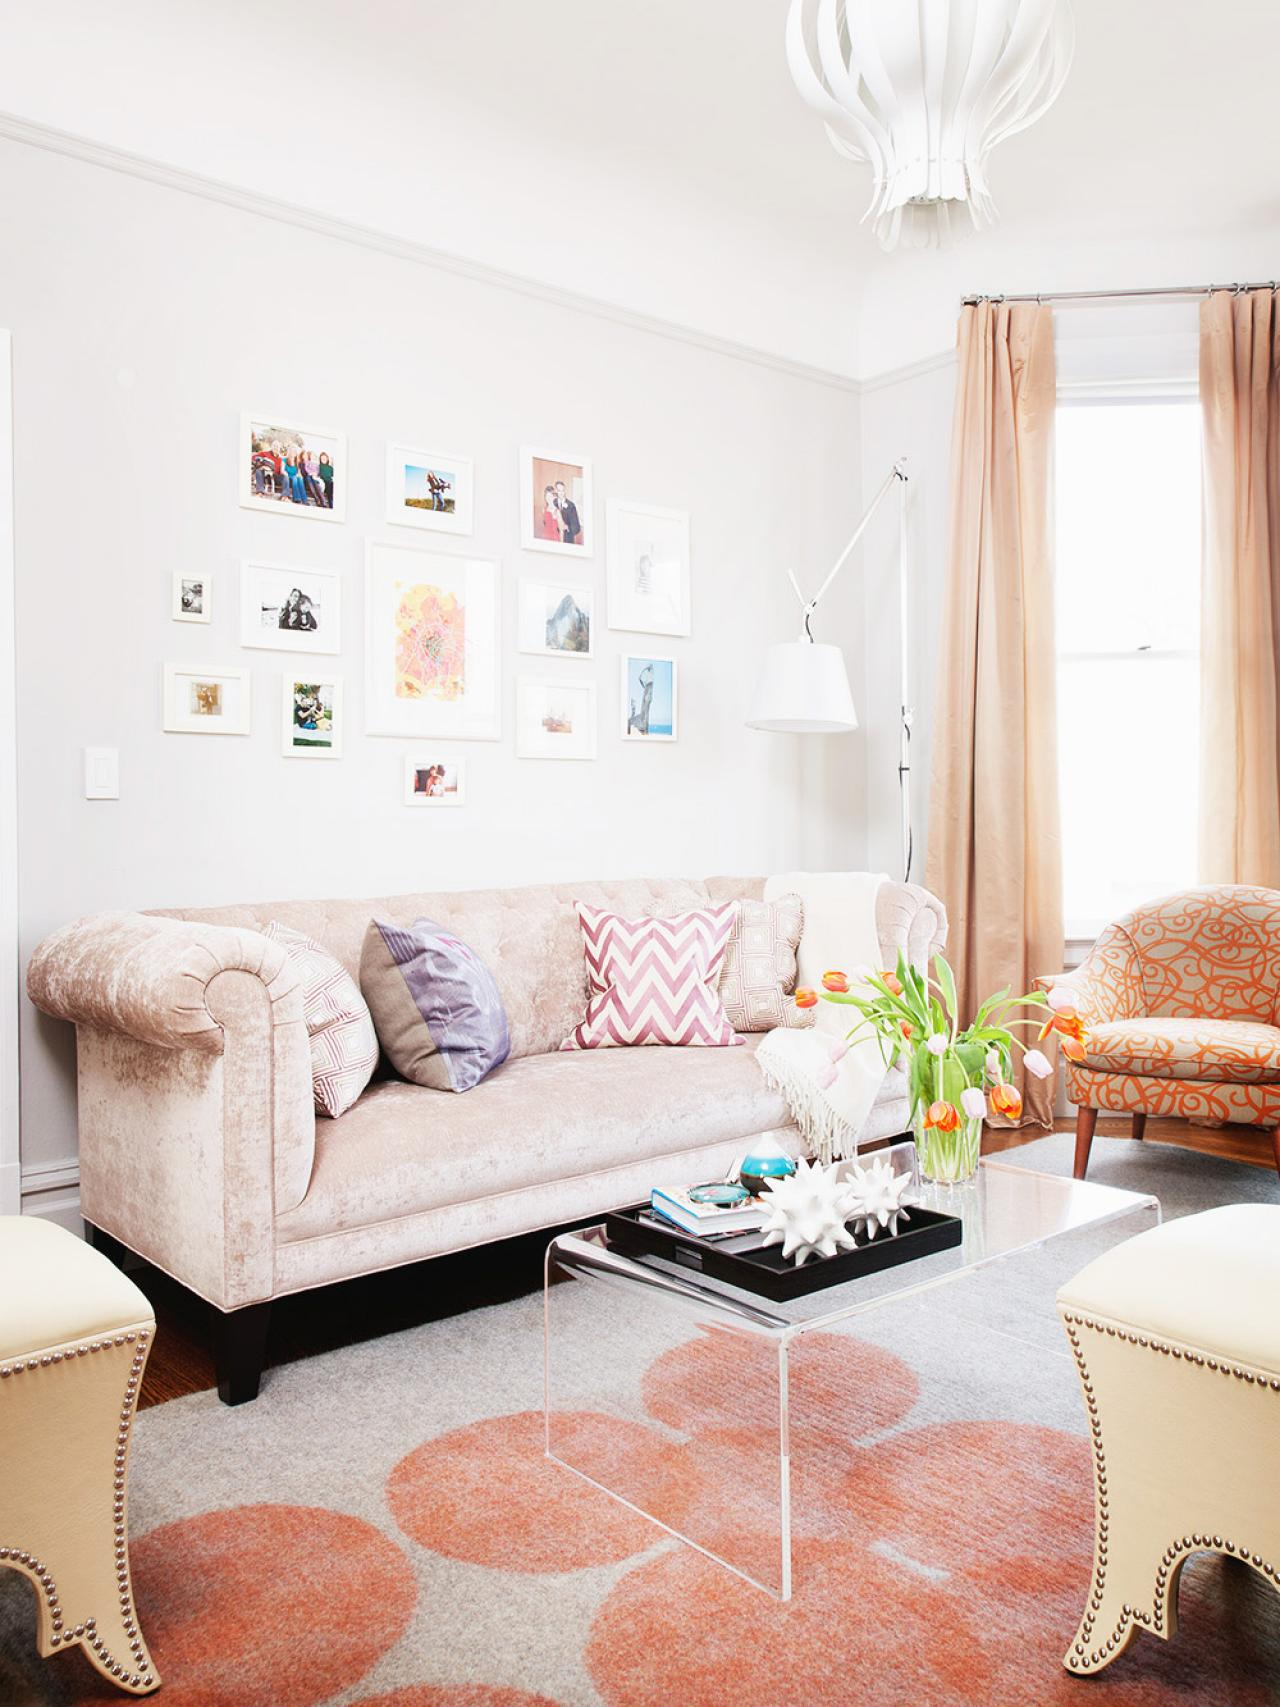 Peach Eclectic Living Room With Framed Gallery Wall Hgtv